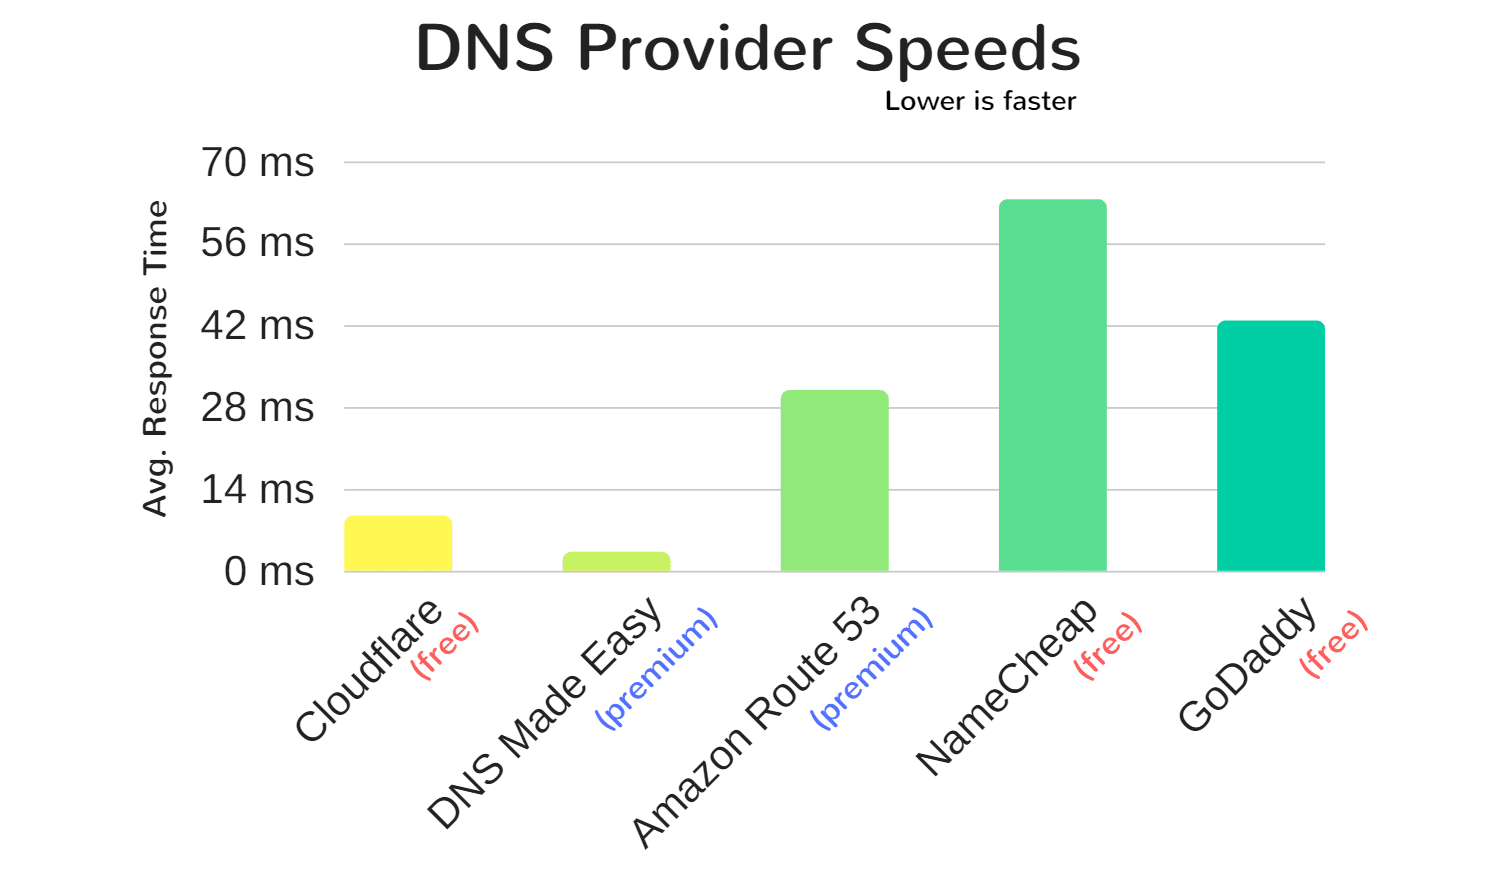 8 Tips on How to Reduce DNS Lookups and Speed Them Up